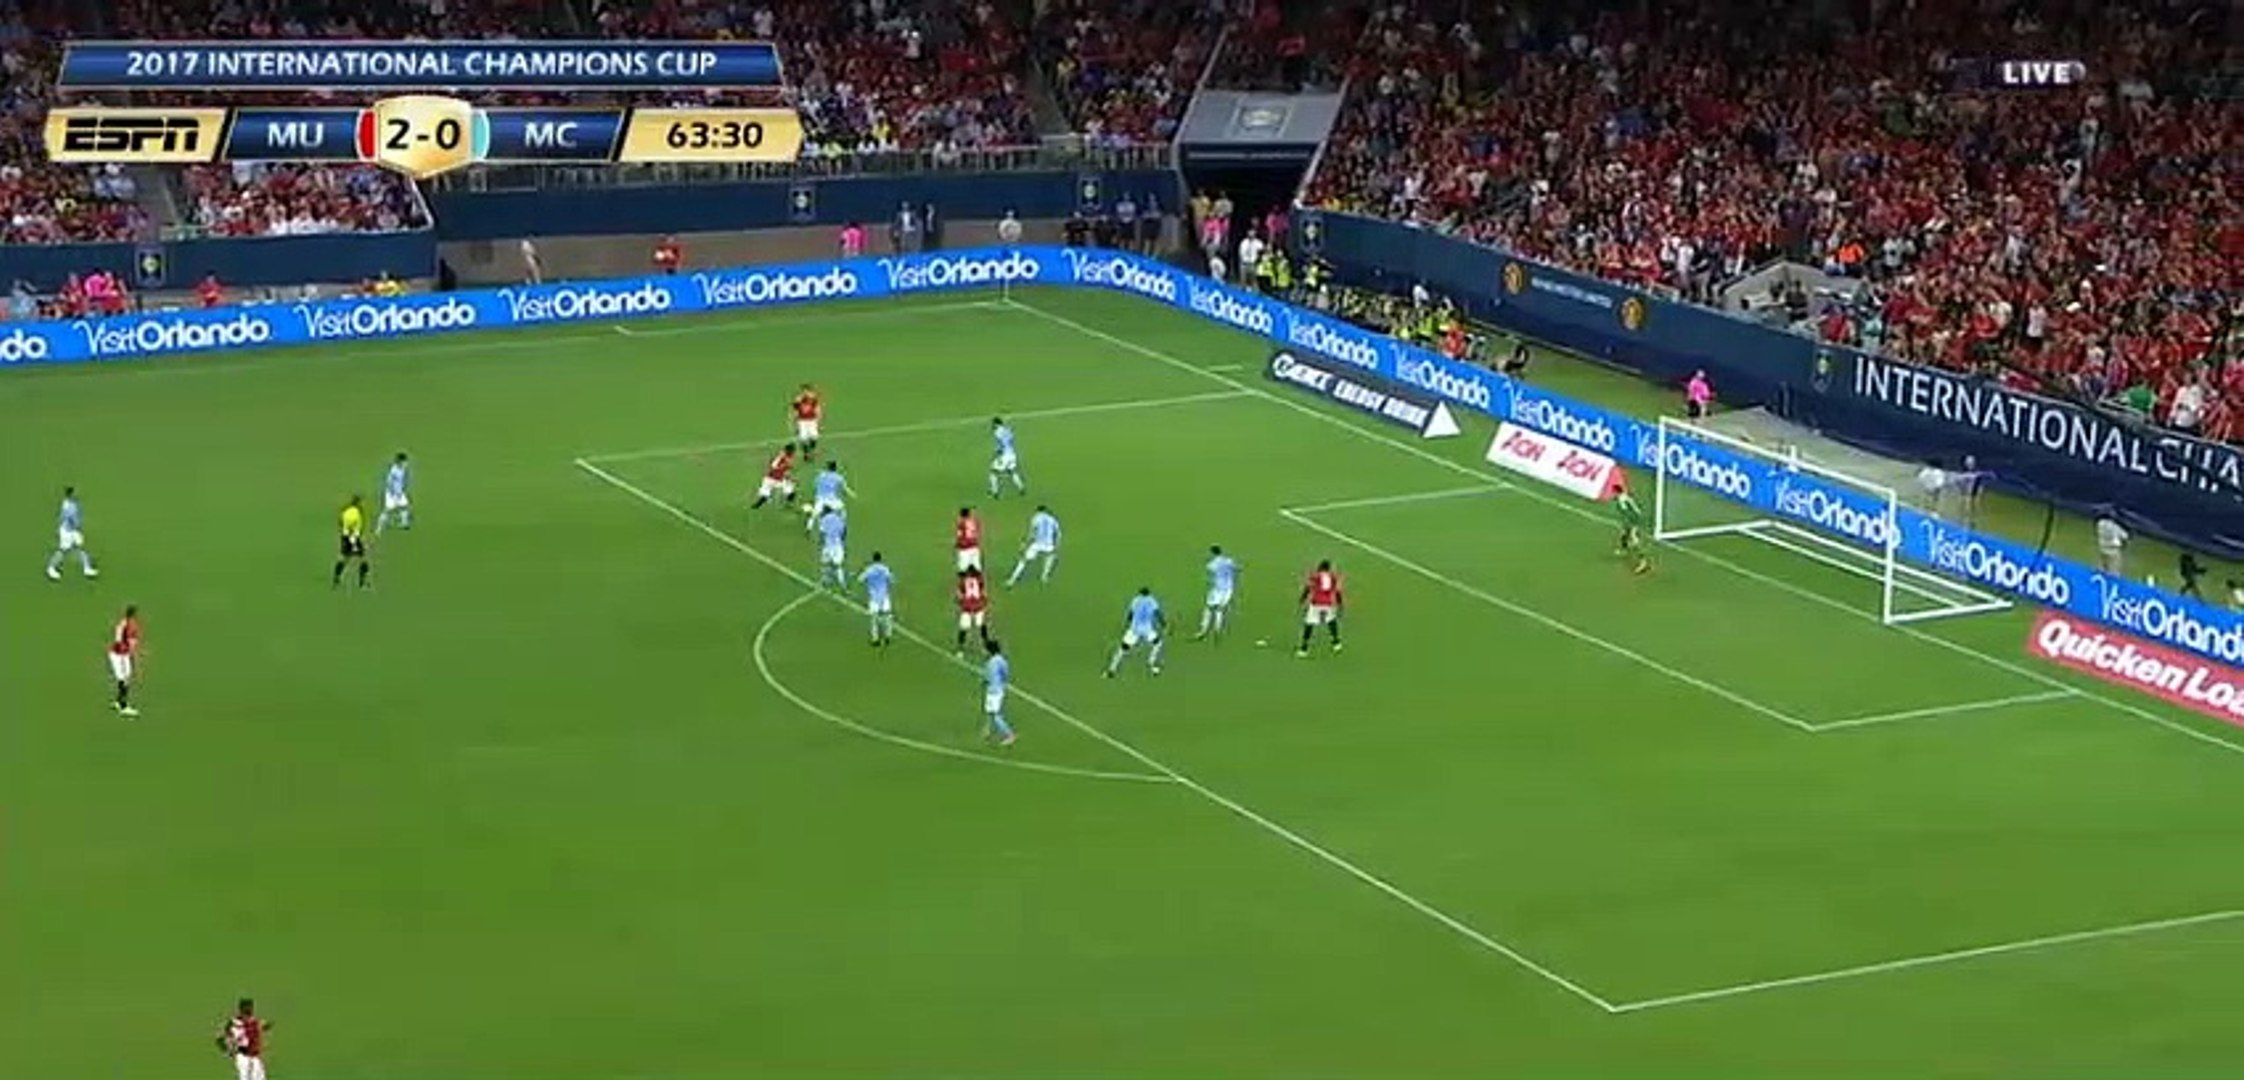 Paul Pogba Incredible Miss HD - Manchester United 2-0 Manchester City